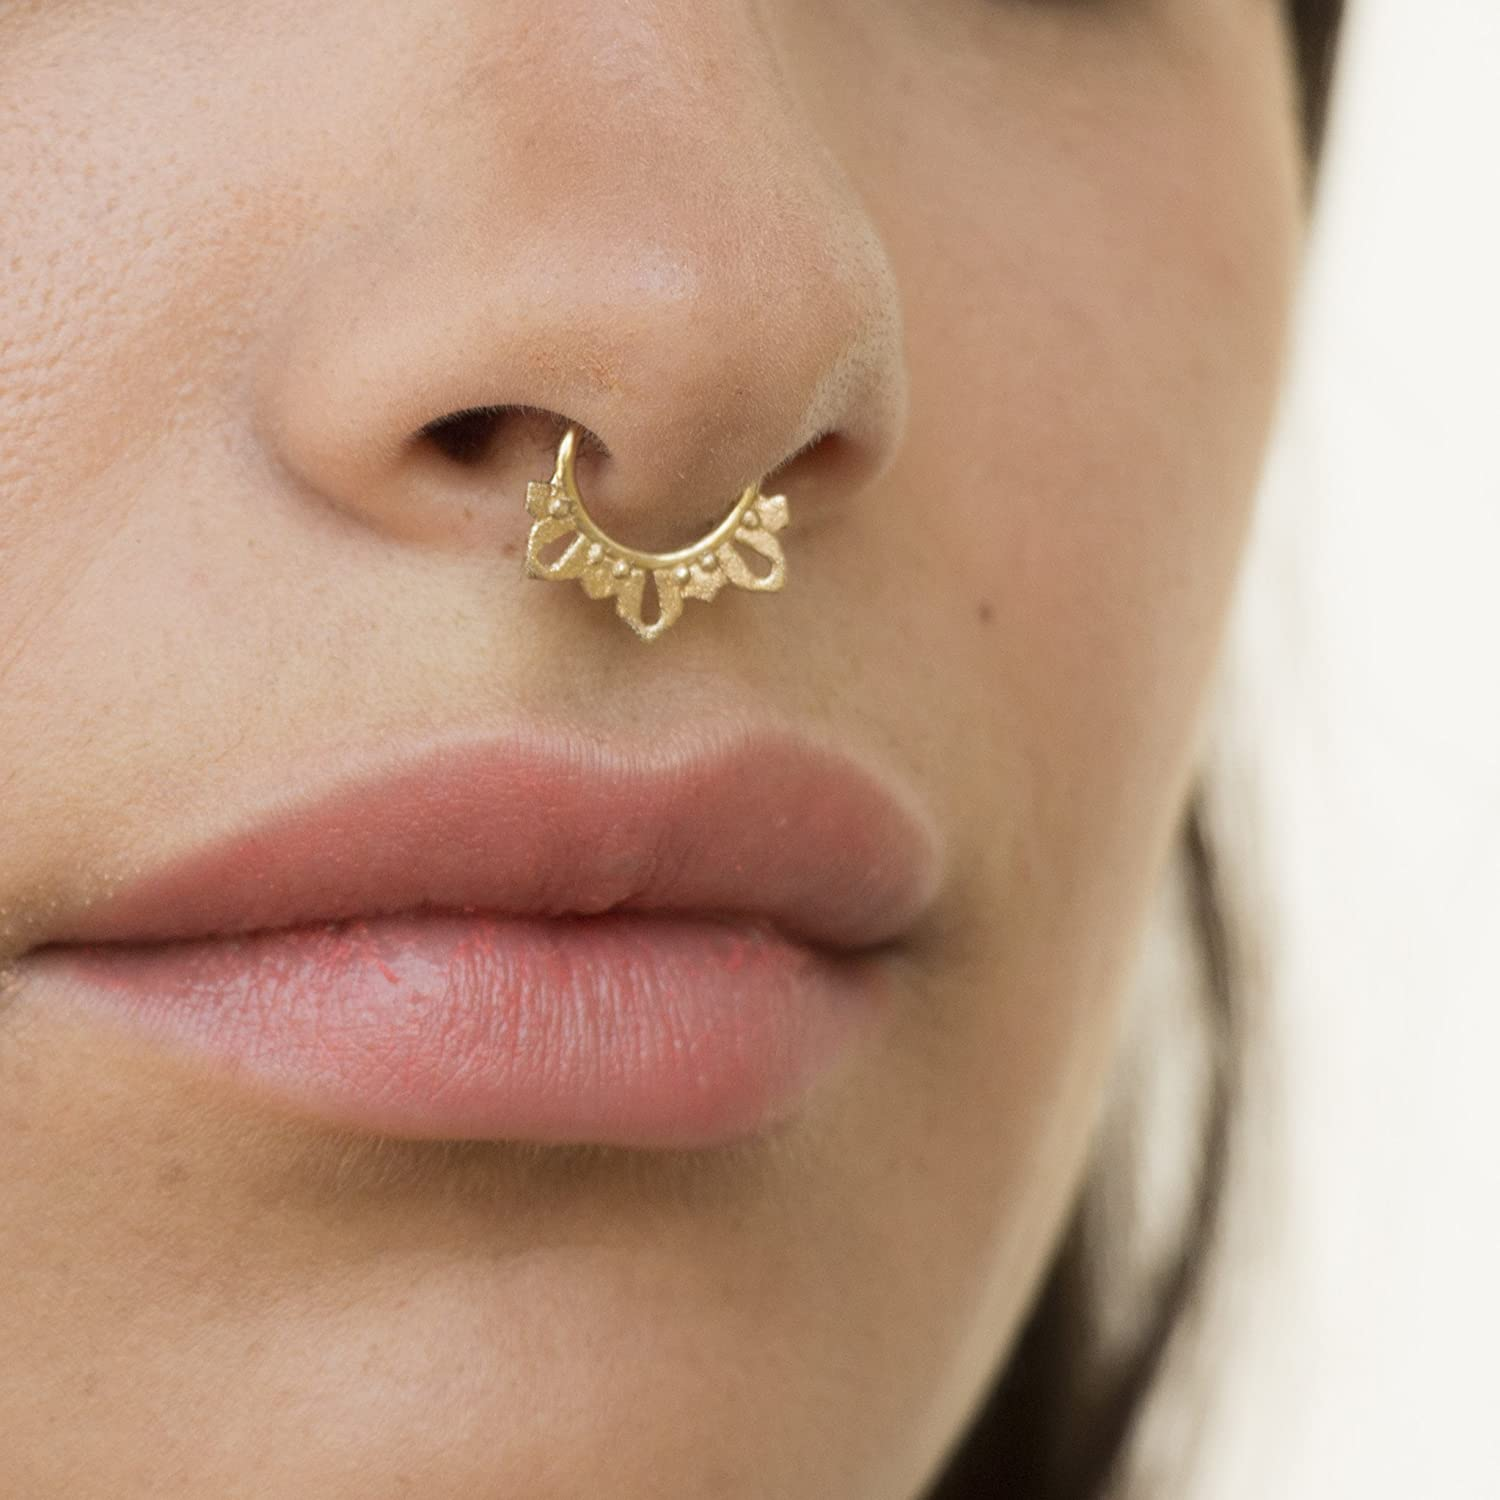 Amazon Com Gold Plated Septum Ring Unique Indian Tribal Style Nose Piercing Jewelry Spikes Fits Tragus Cartilage Helix Rook Daith Hoop Earring 16g Handmade Handmade